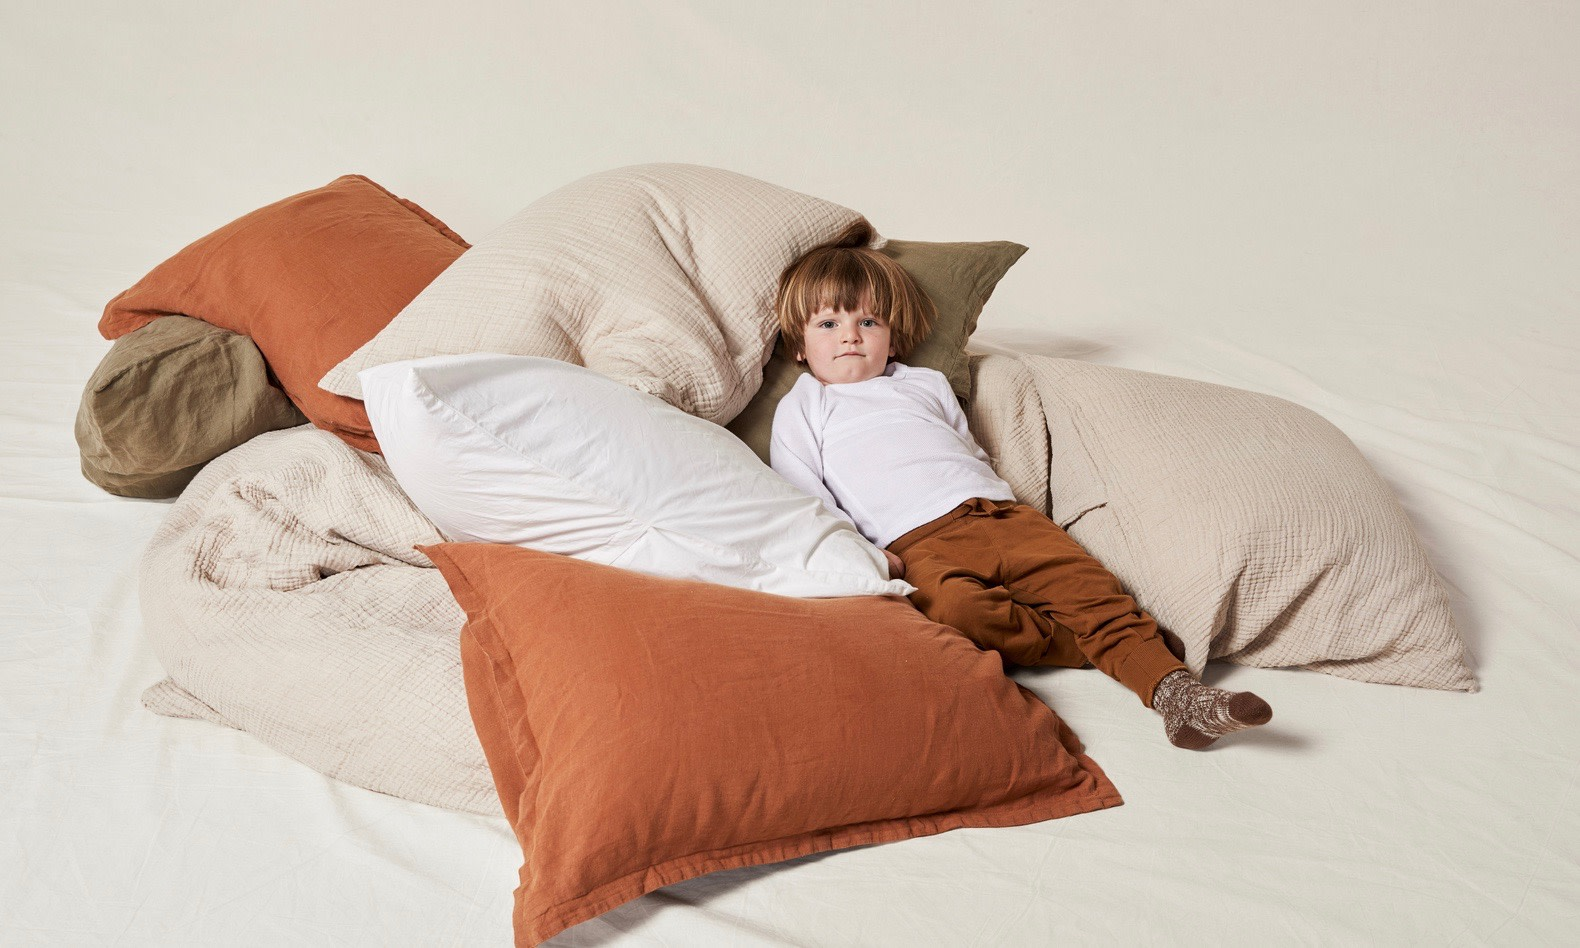 Little boy surrounded by pillows.